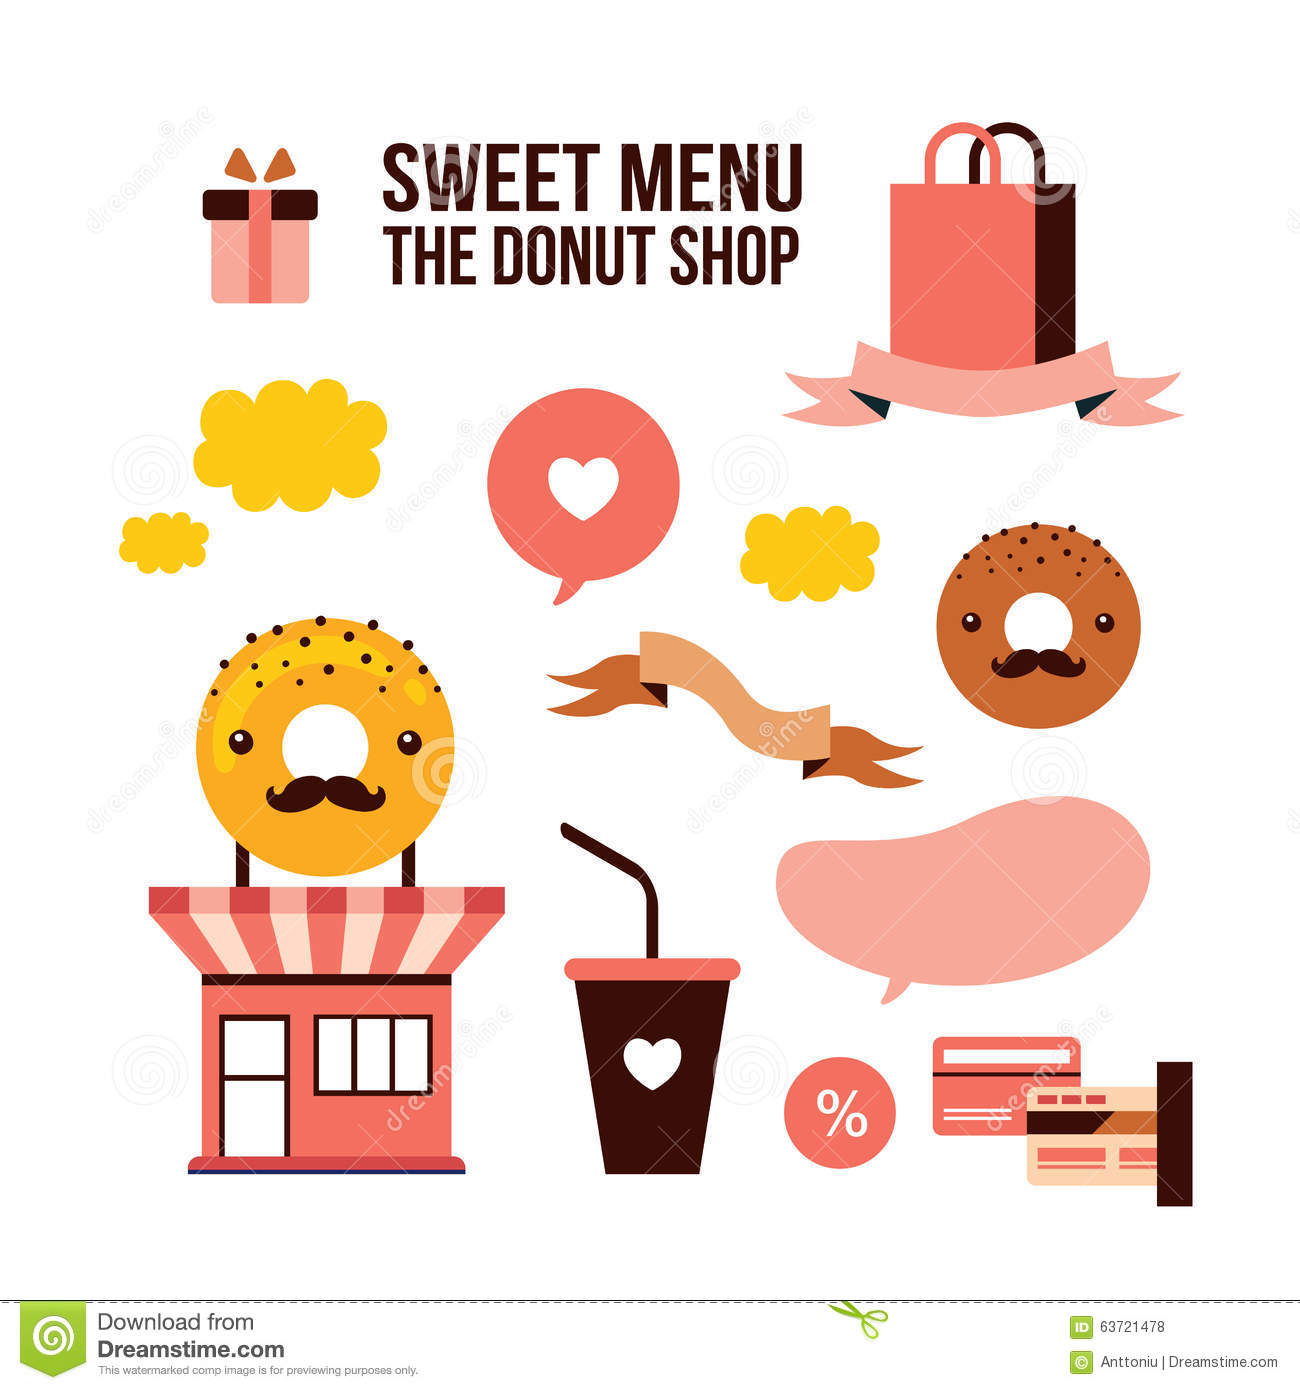 Cartoon Doughnut Factory: Donut Shop Cake Dessert Delicious Food Isometric